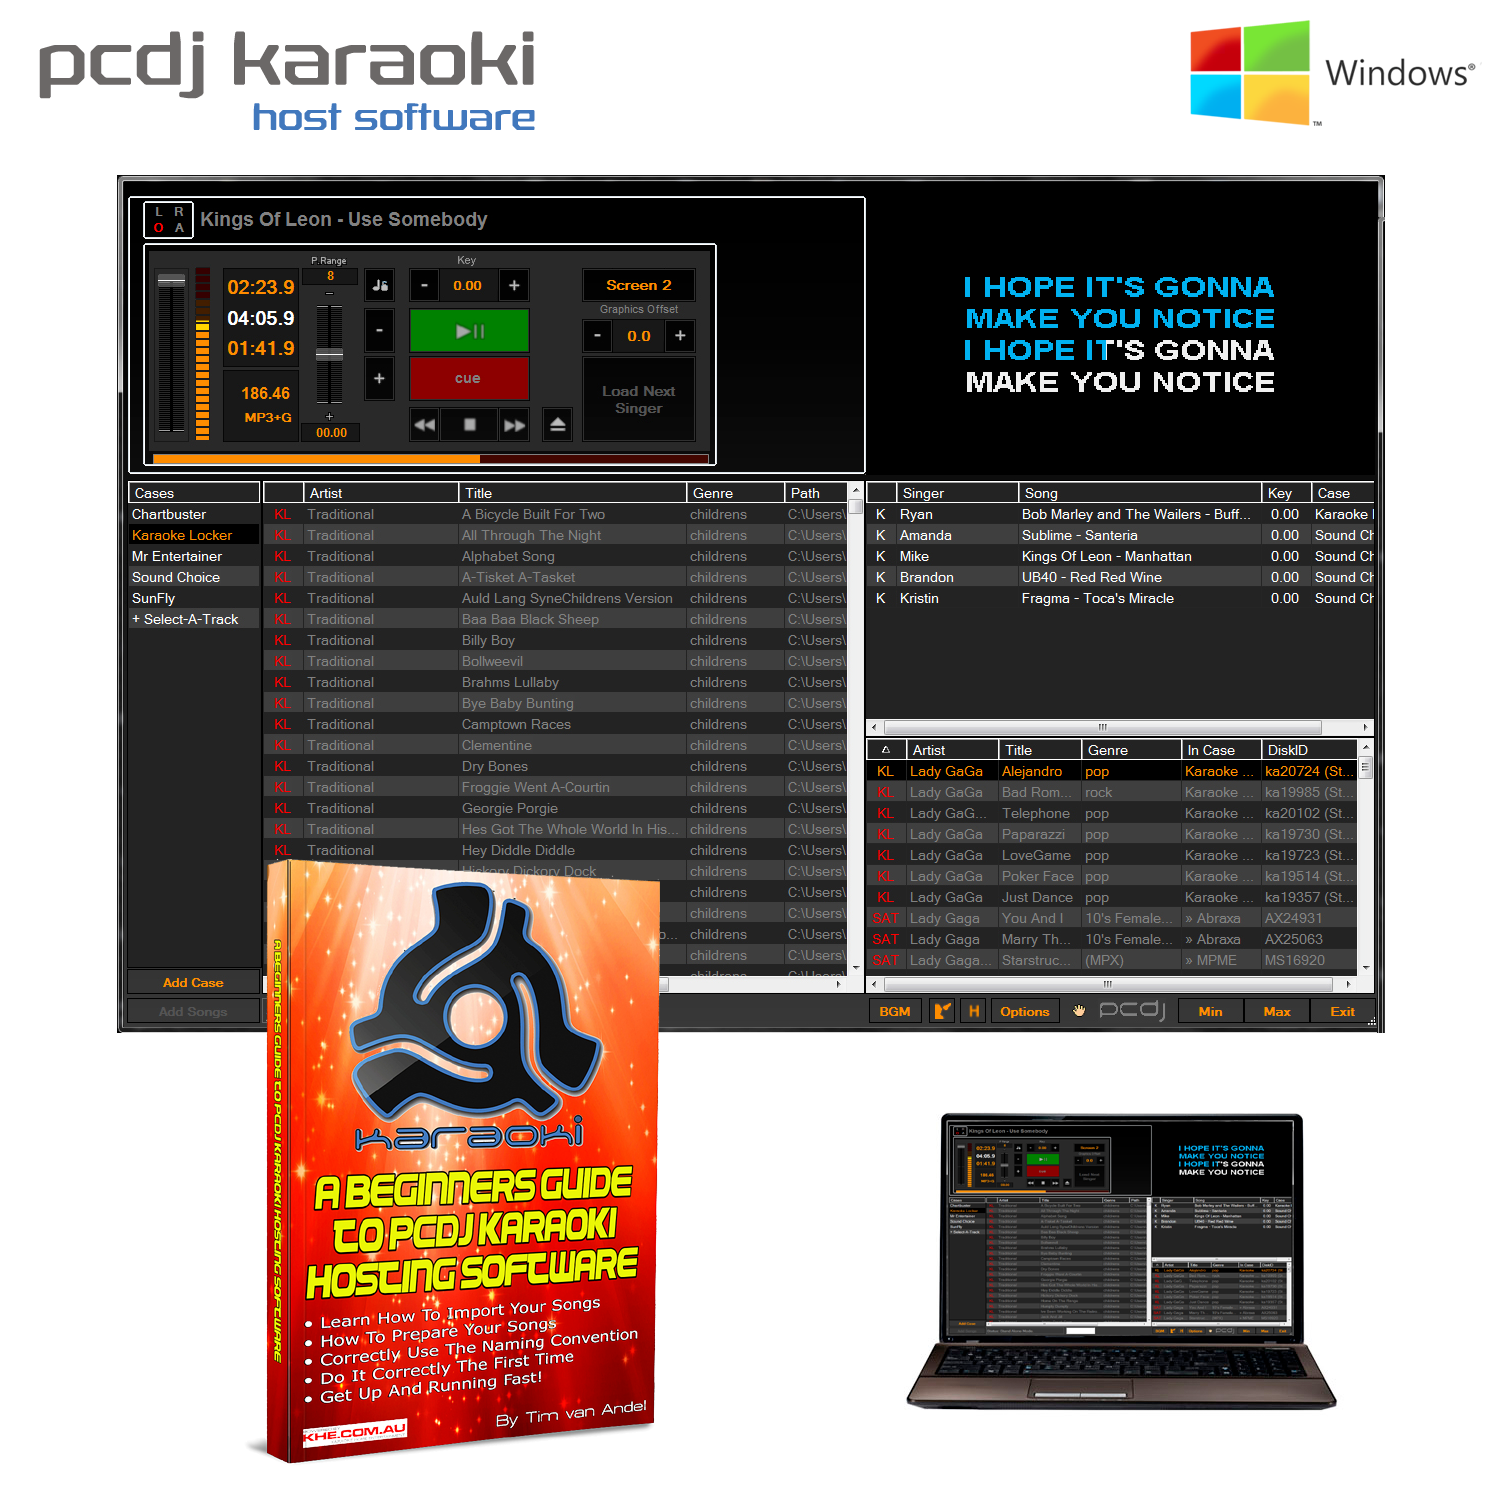 PCDJ Karaoki Hosting Software (Win PC)